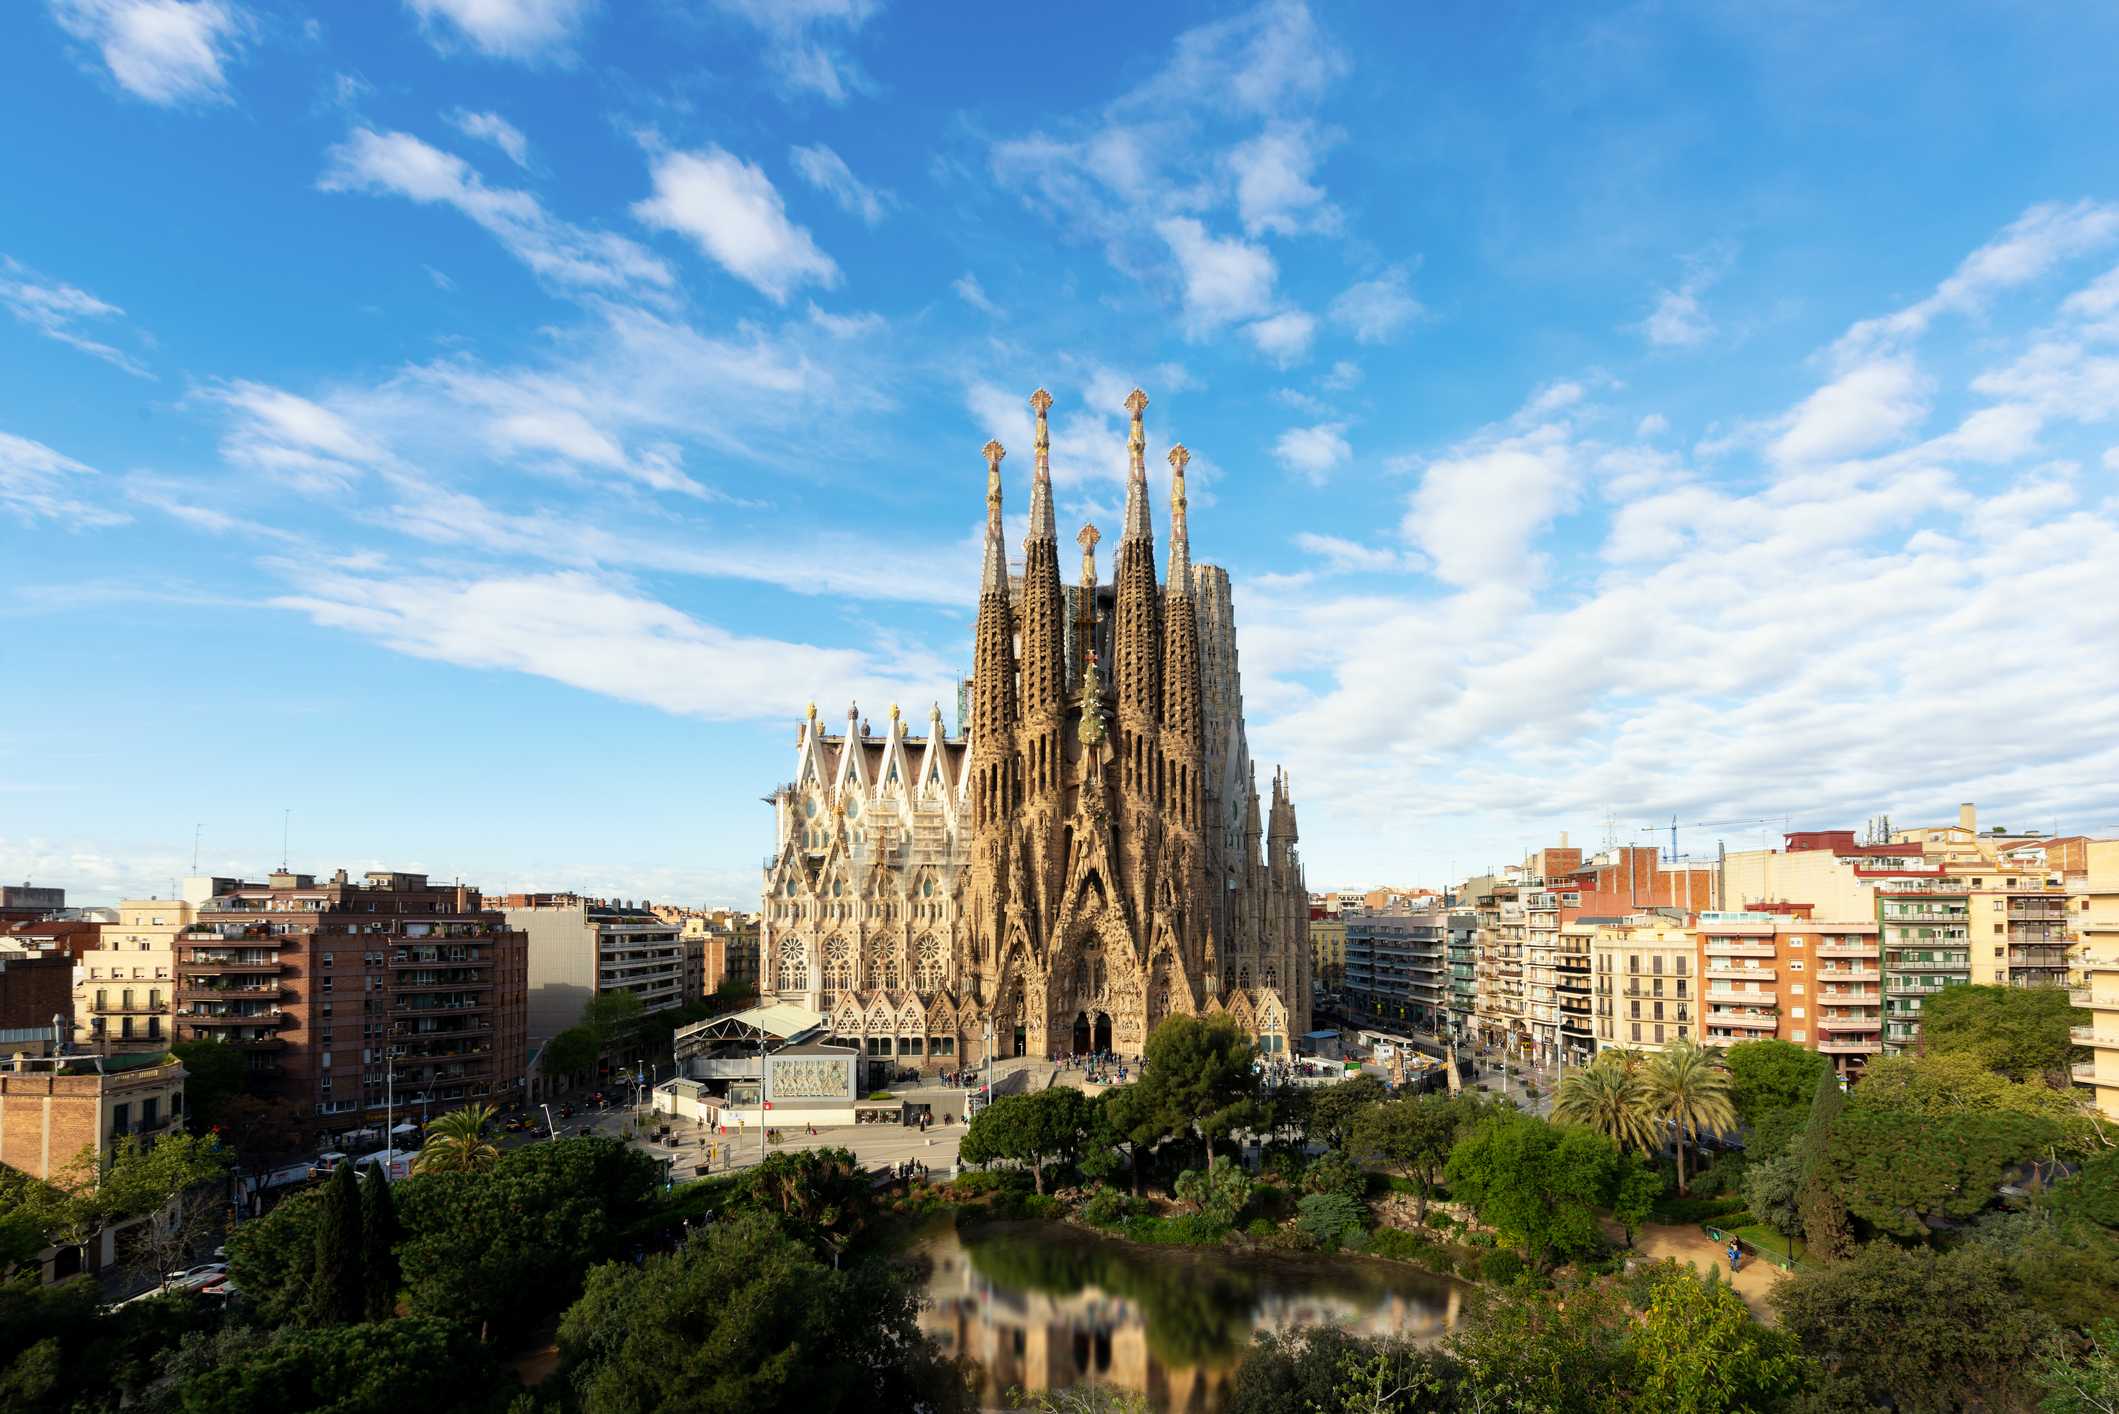 Modernisme helped shape the look of Barcelona in the 20th century, with Gaudí's Sagrada Família its centrepiece